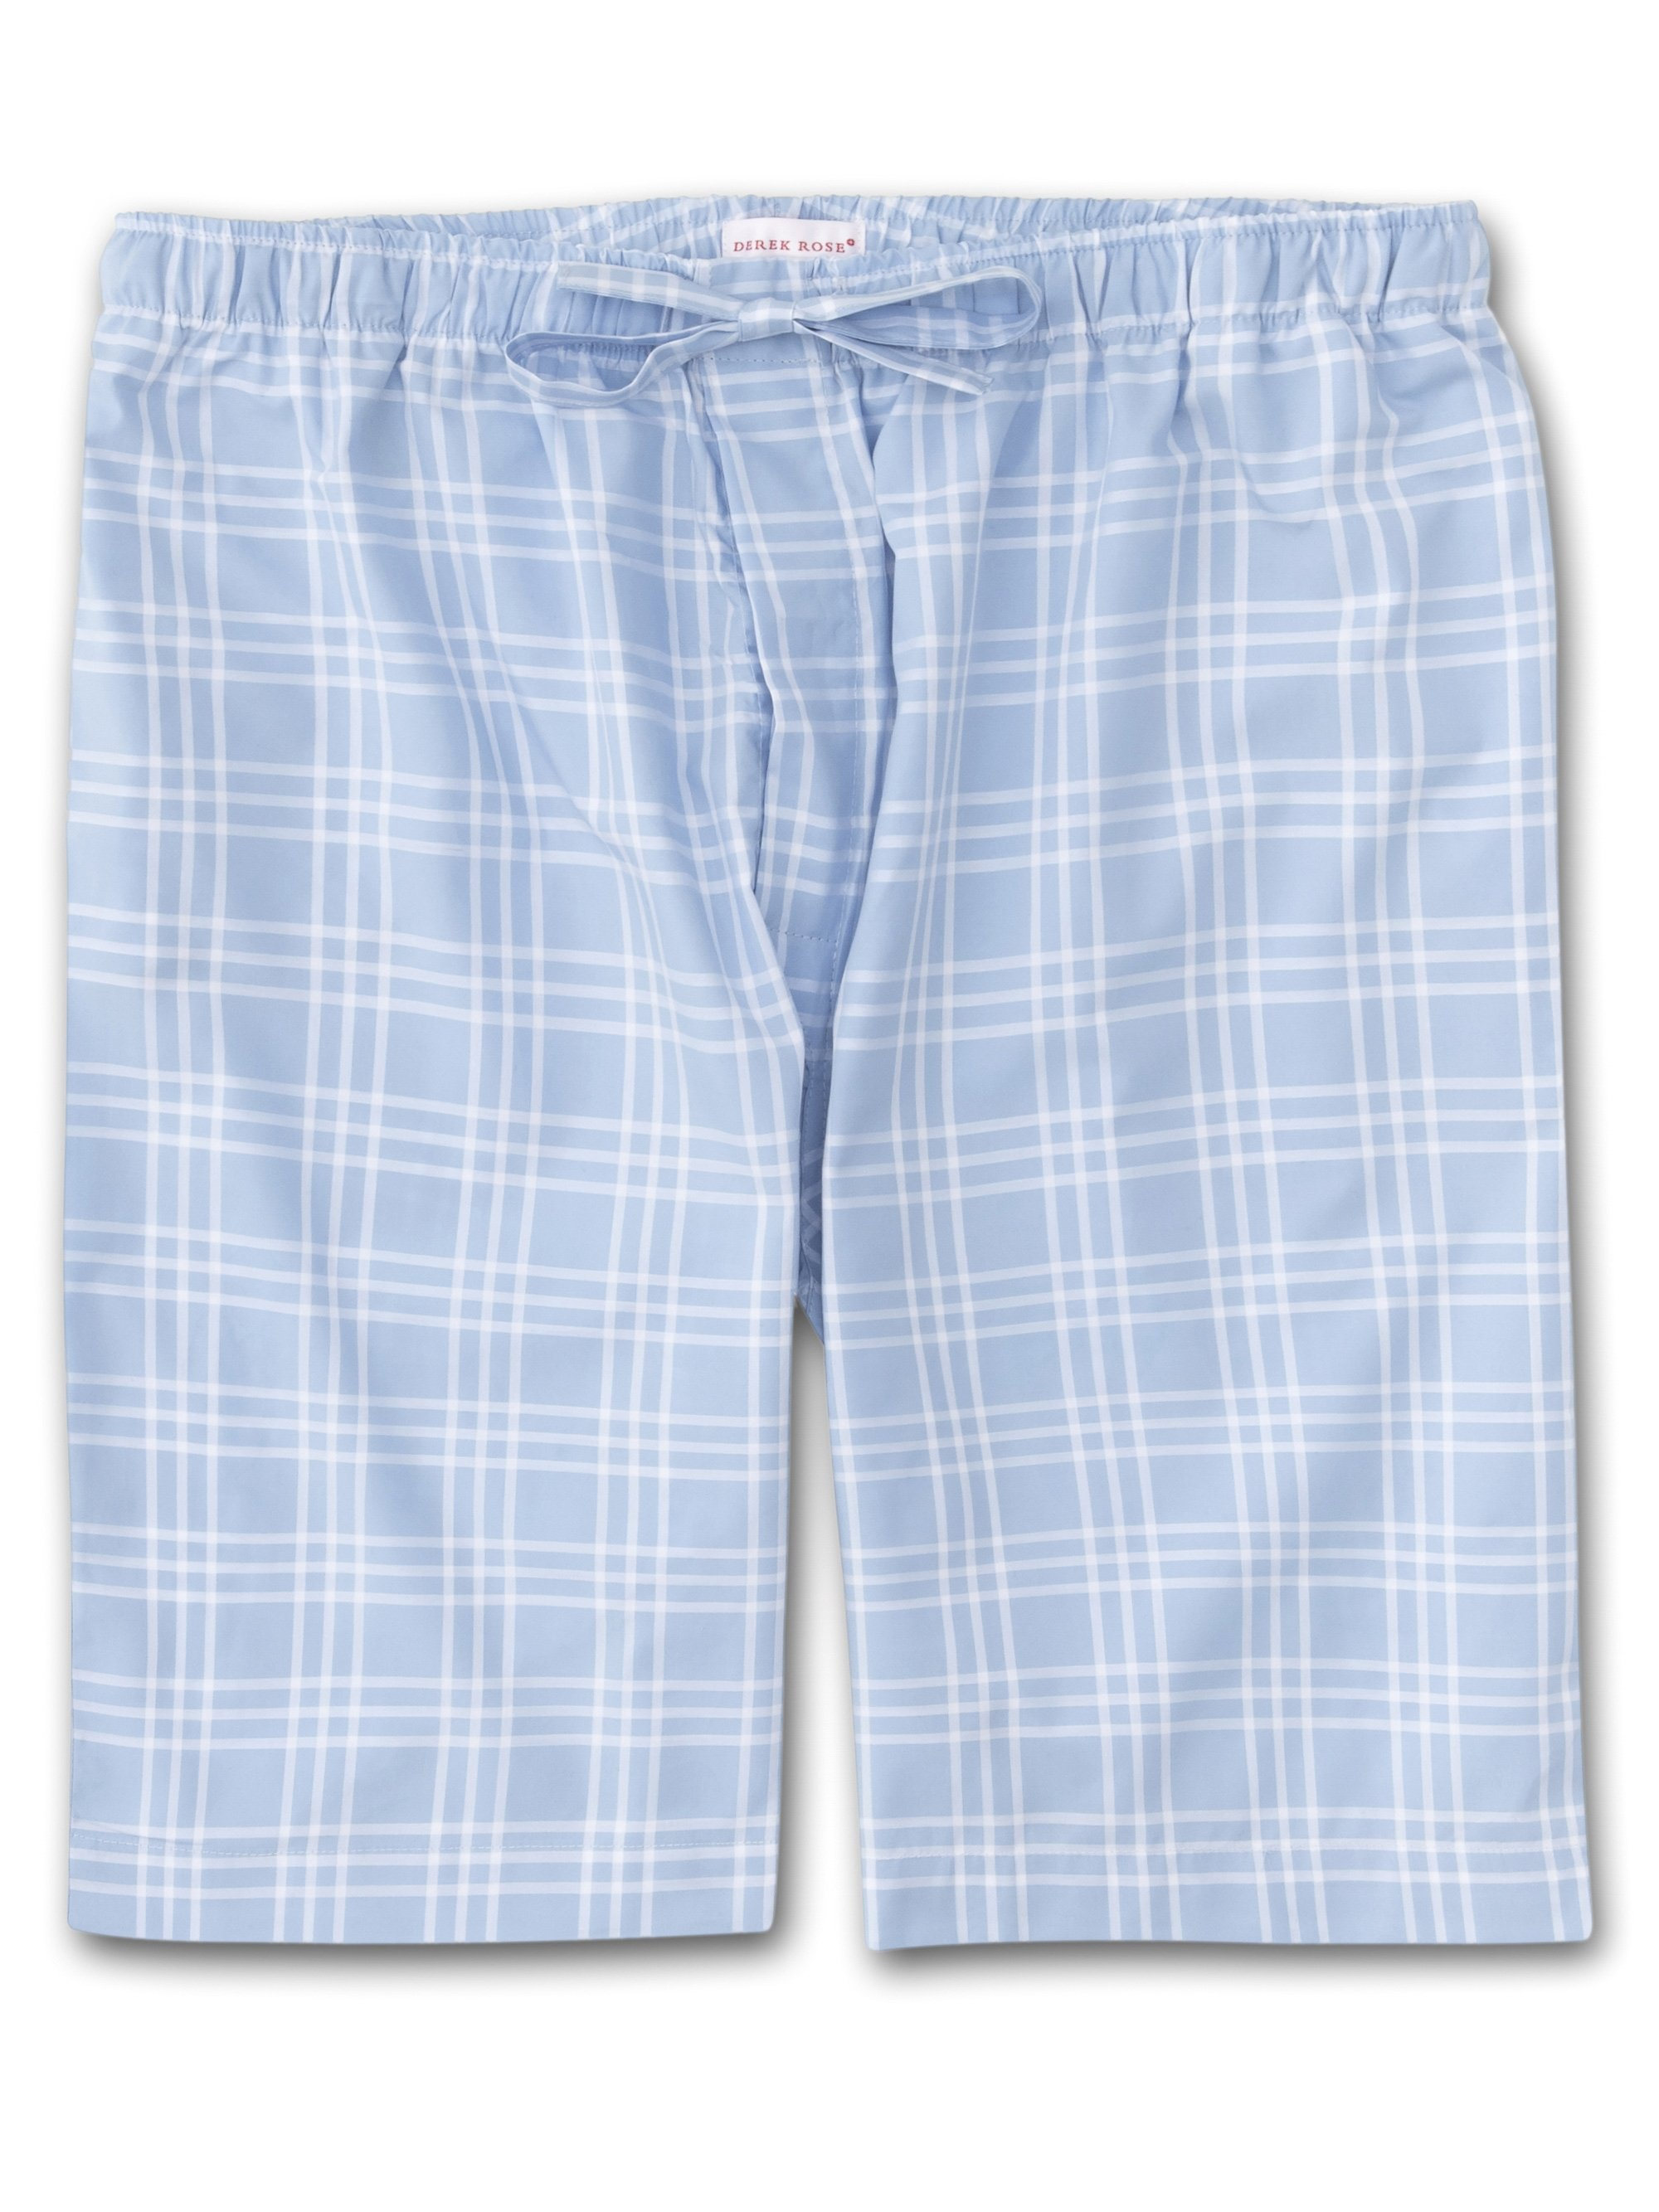 Men's Lounge Shorts Barker 27 Cotton Check Blue